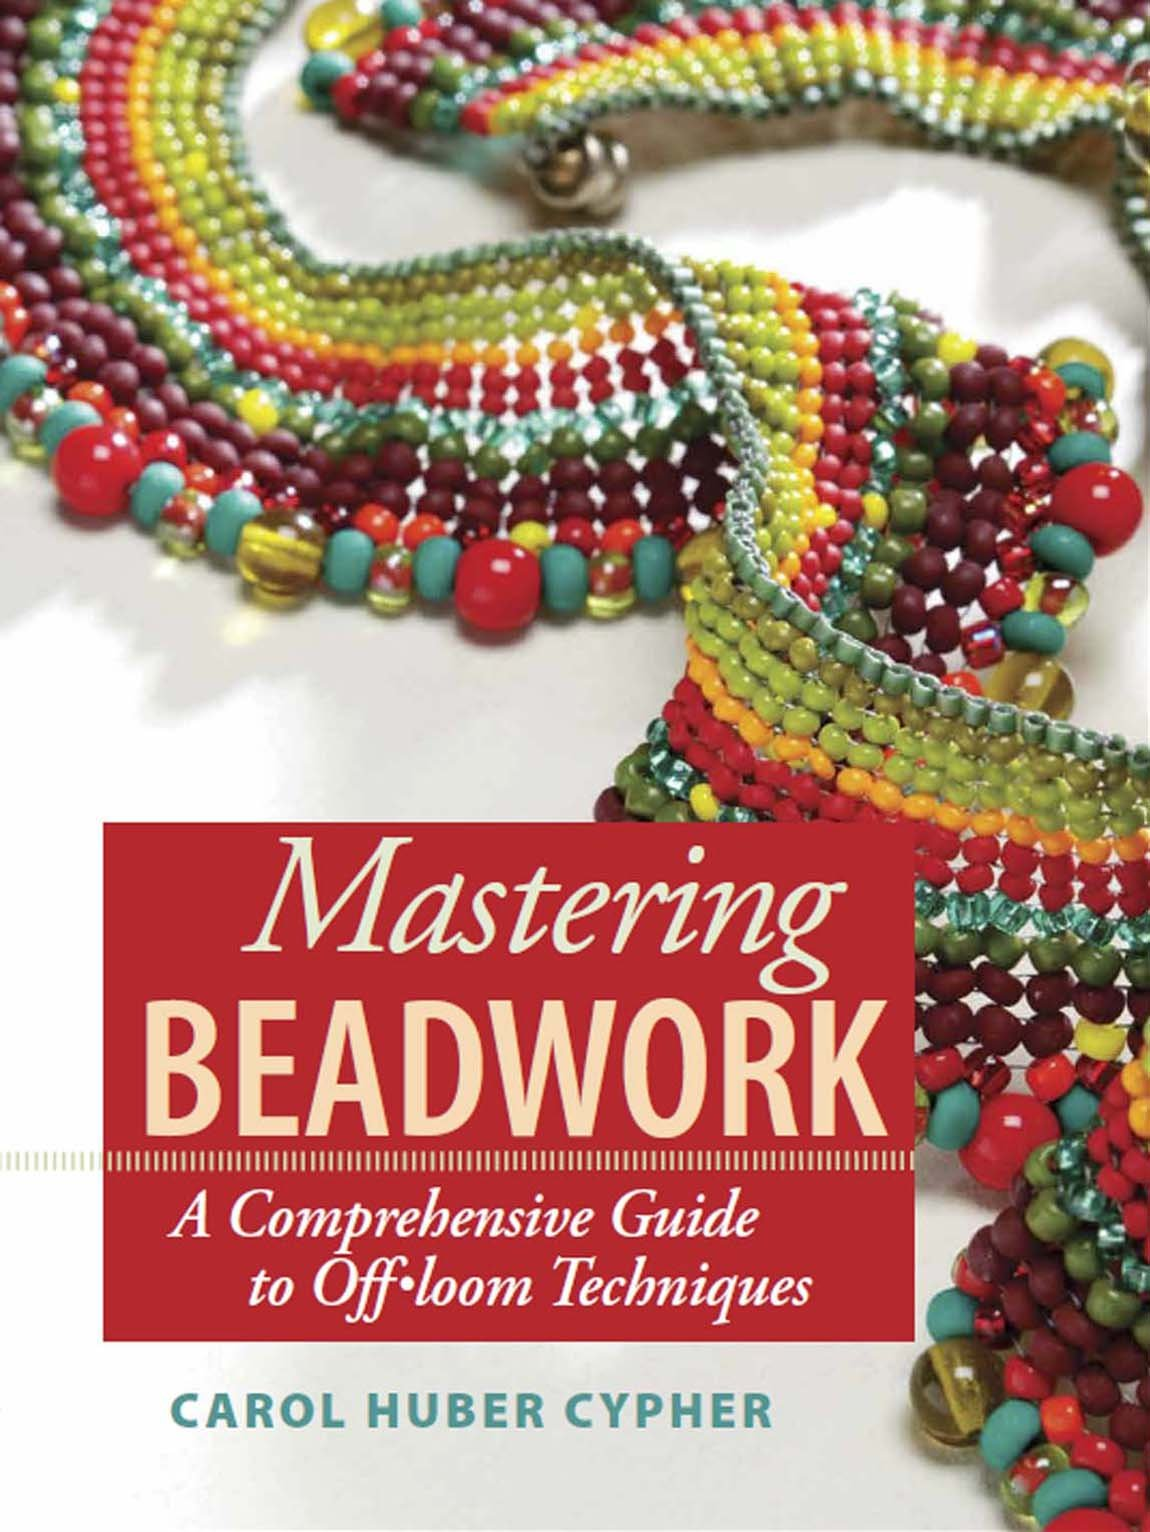 Mastering Beadwork: Carol Cypher: 9781596680135: Amazon.com: Books